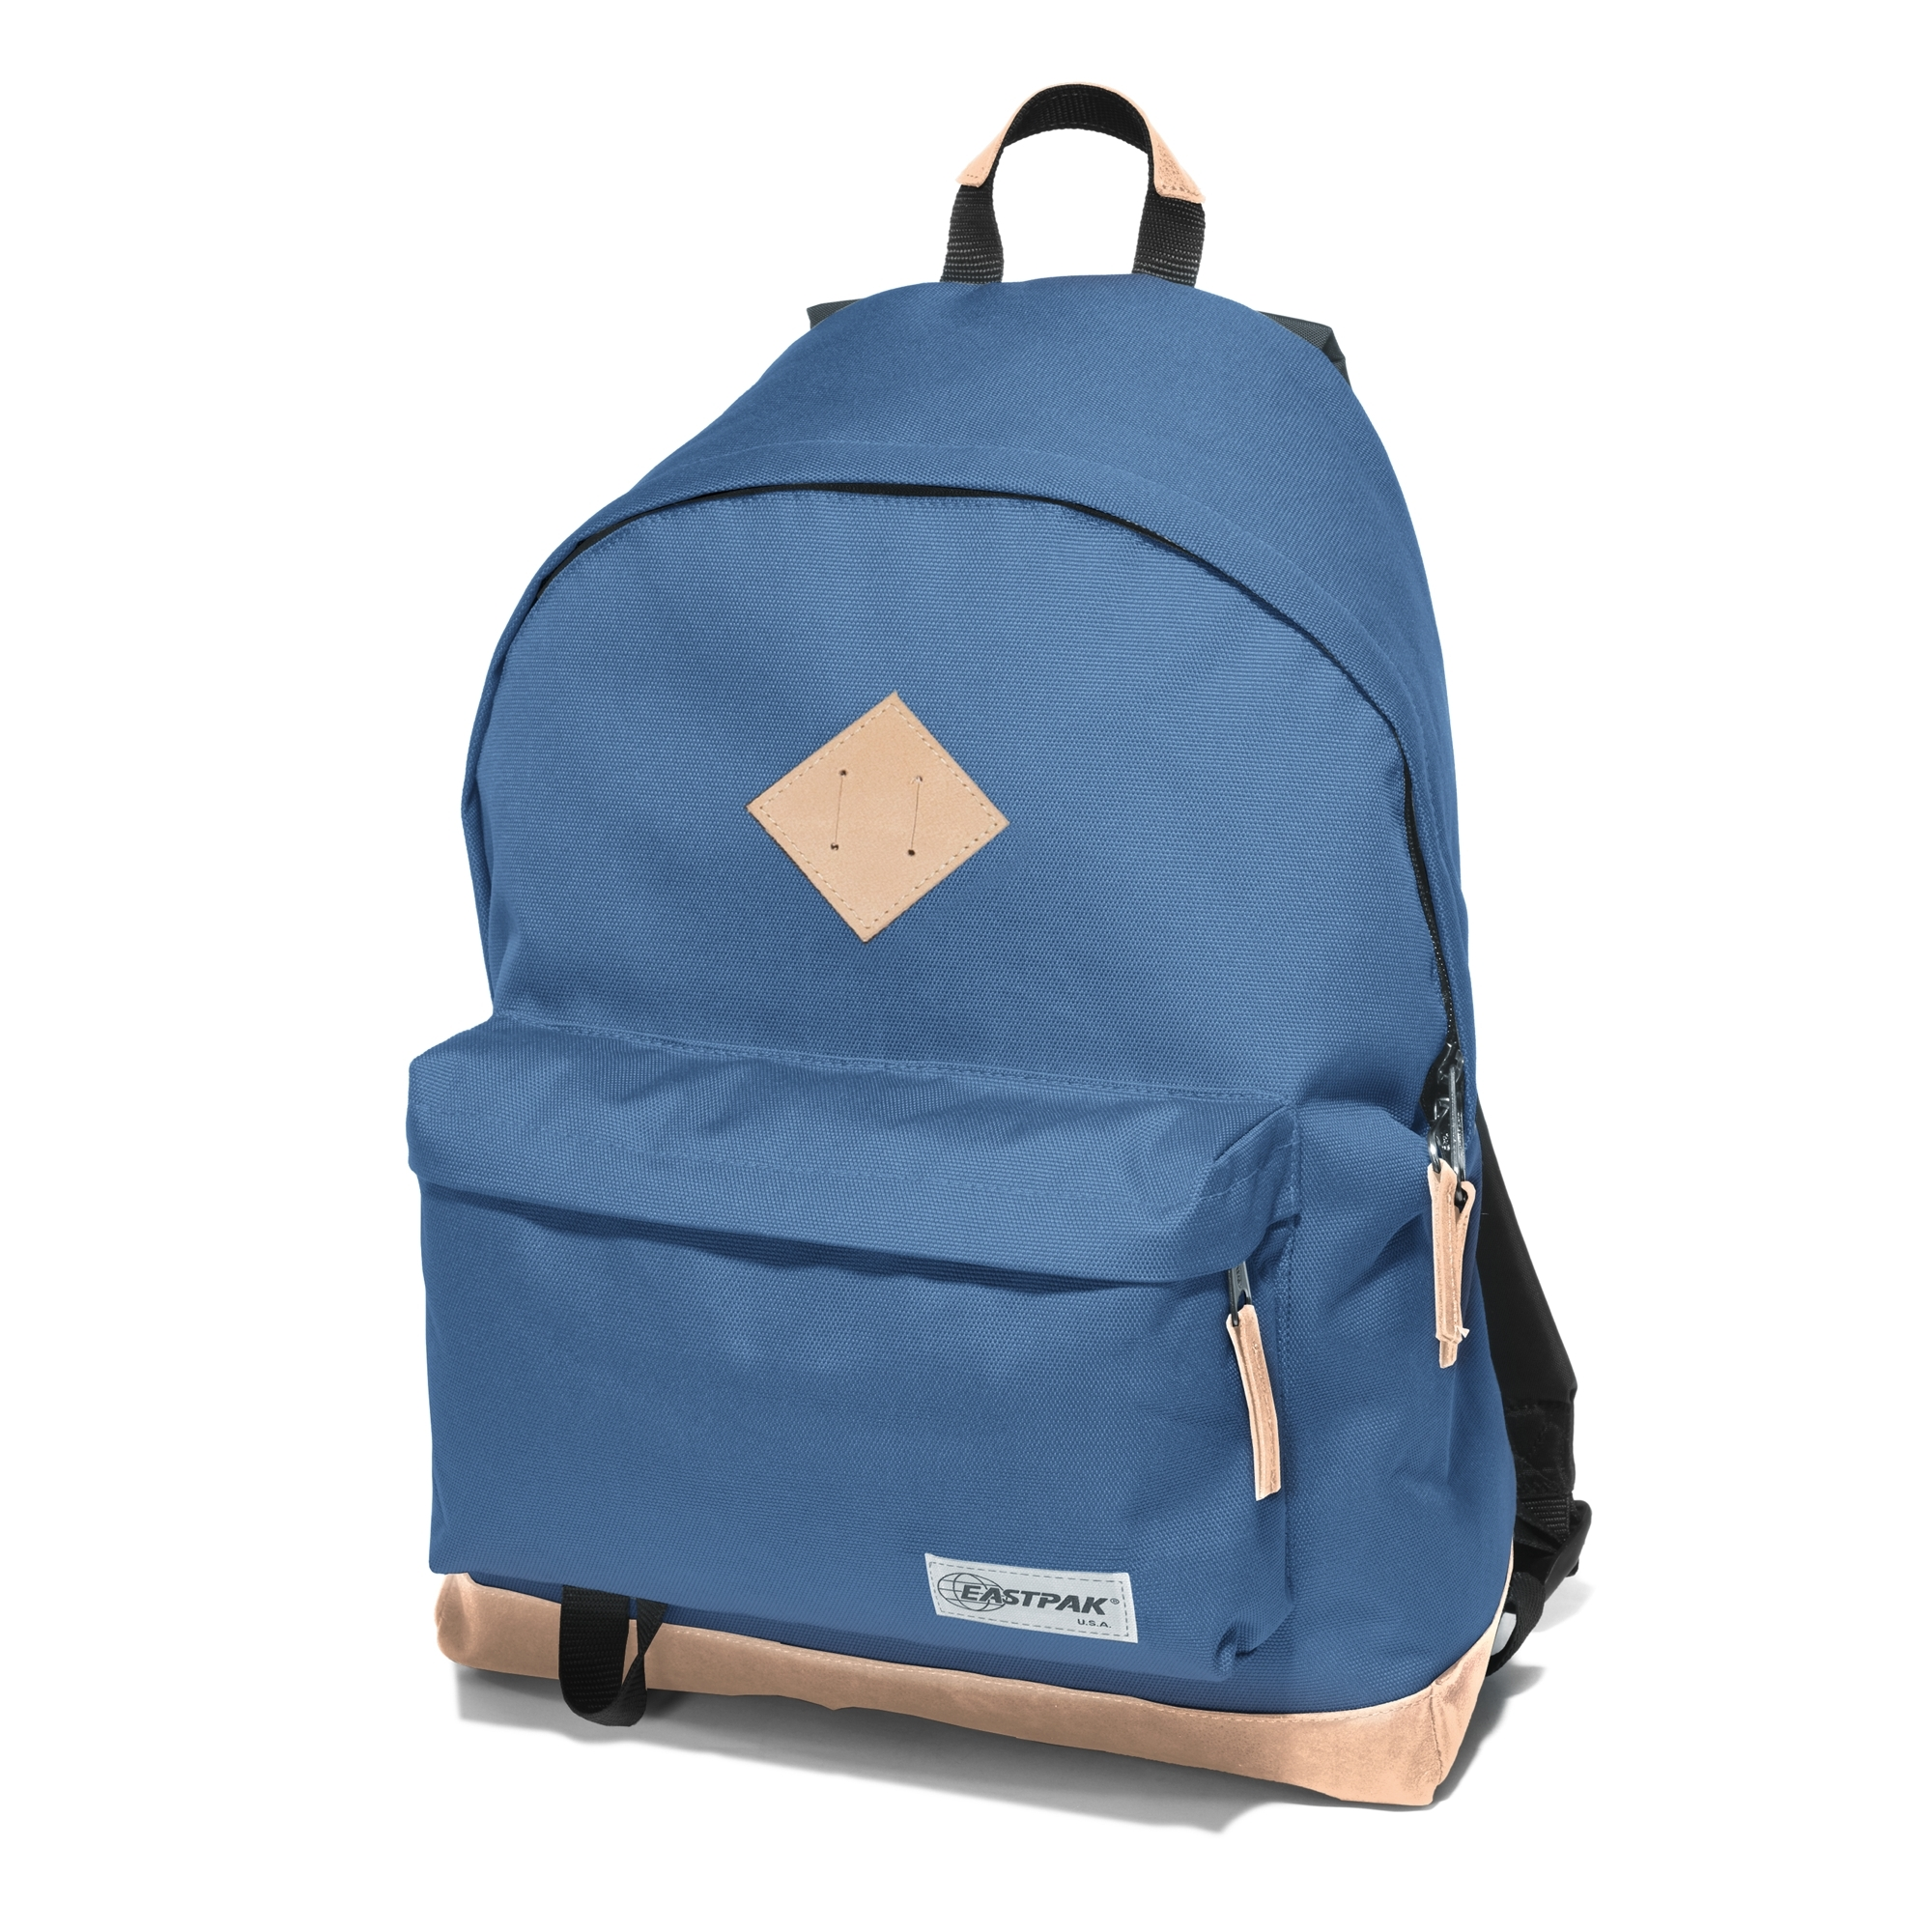 Eastpak_Into the Out Wyoming_£60